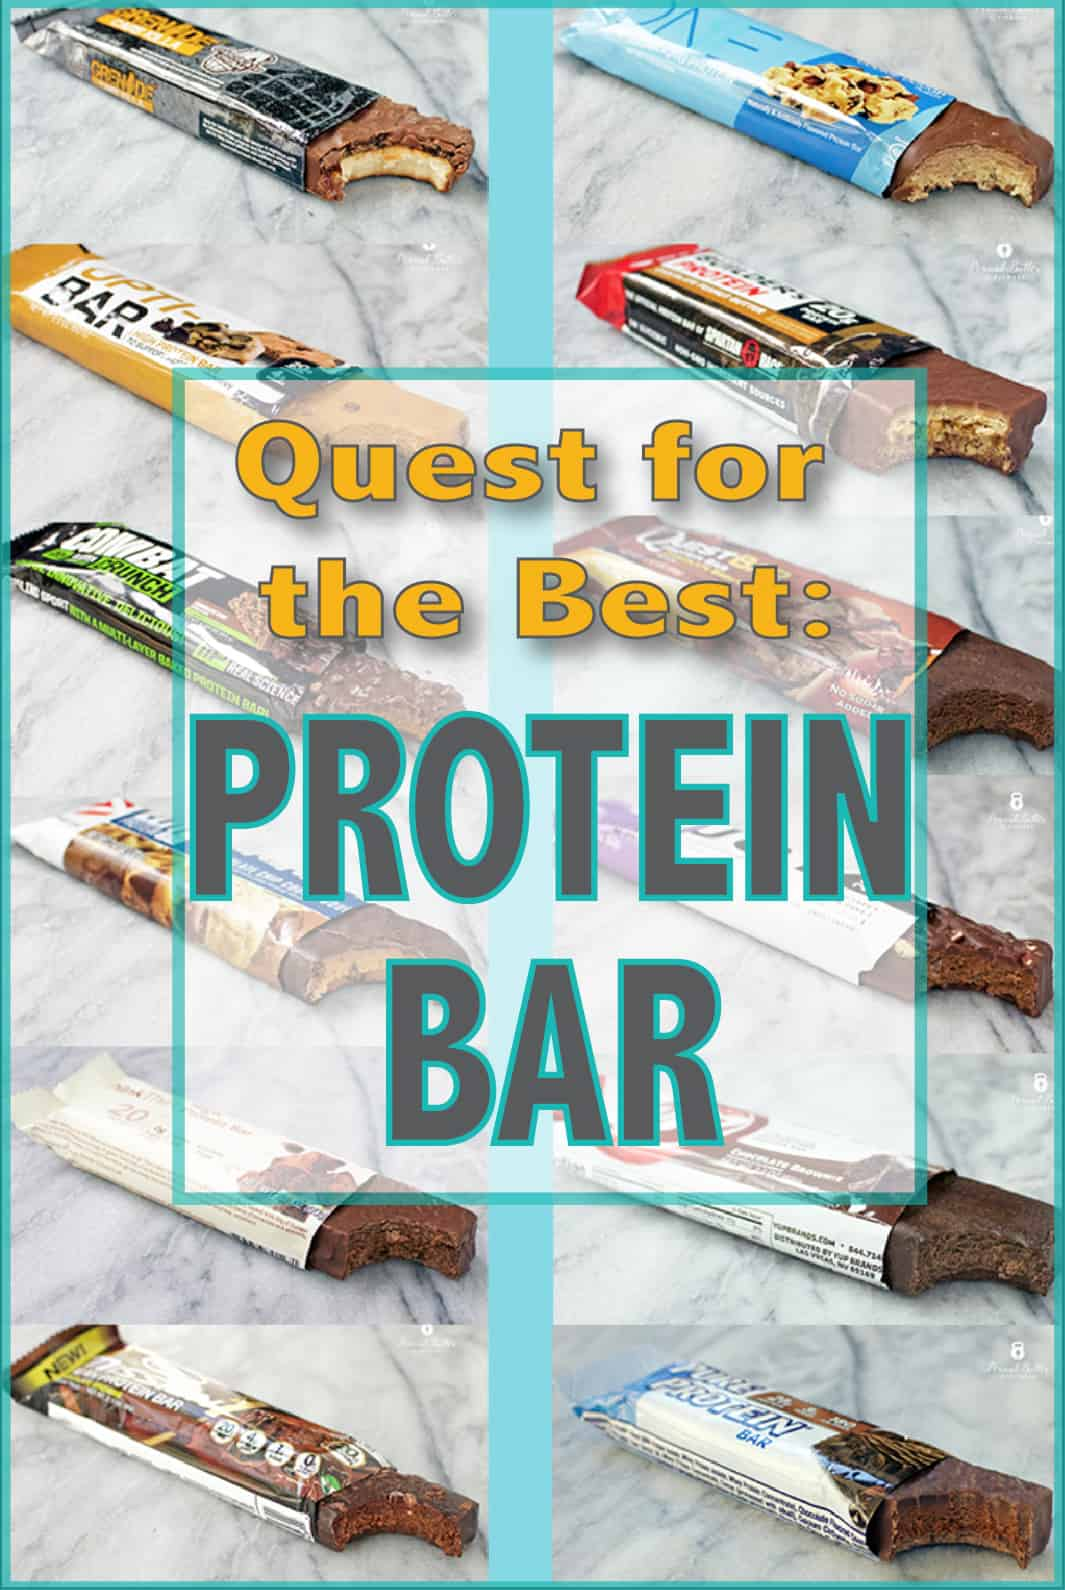 Quest for the best protein bar PINTEREST-01